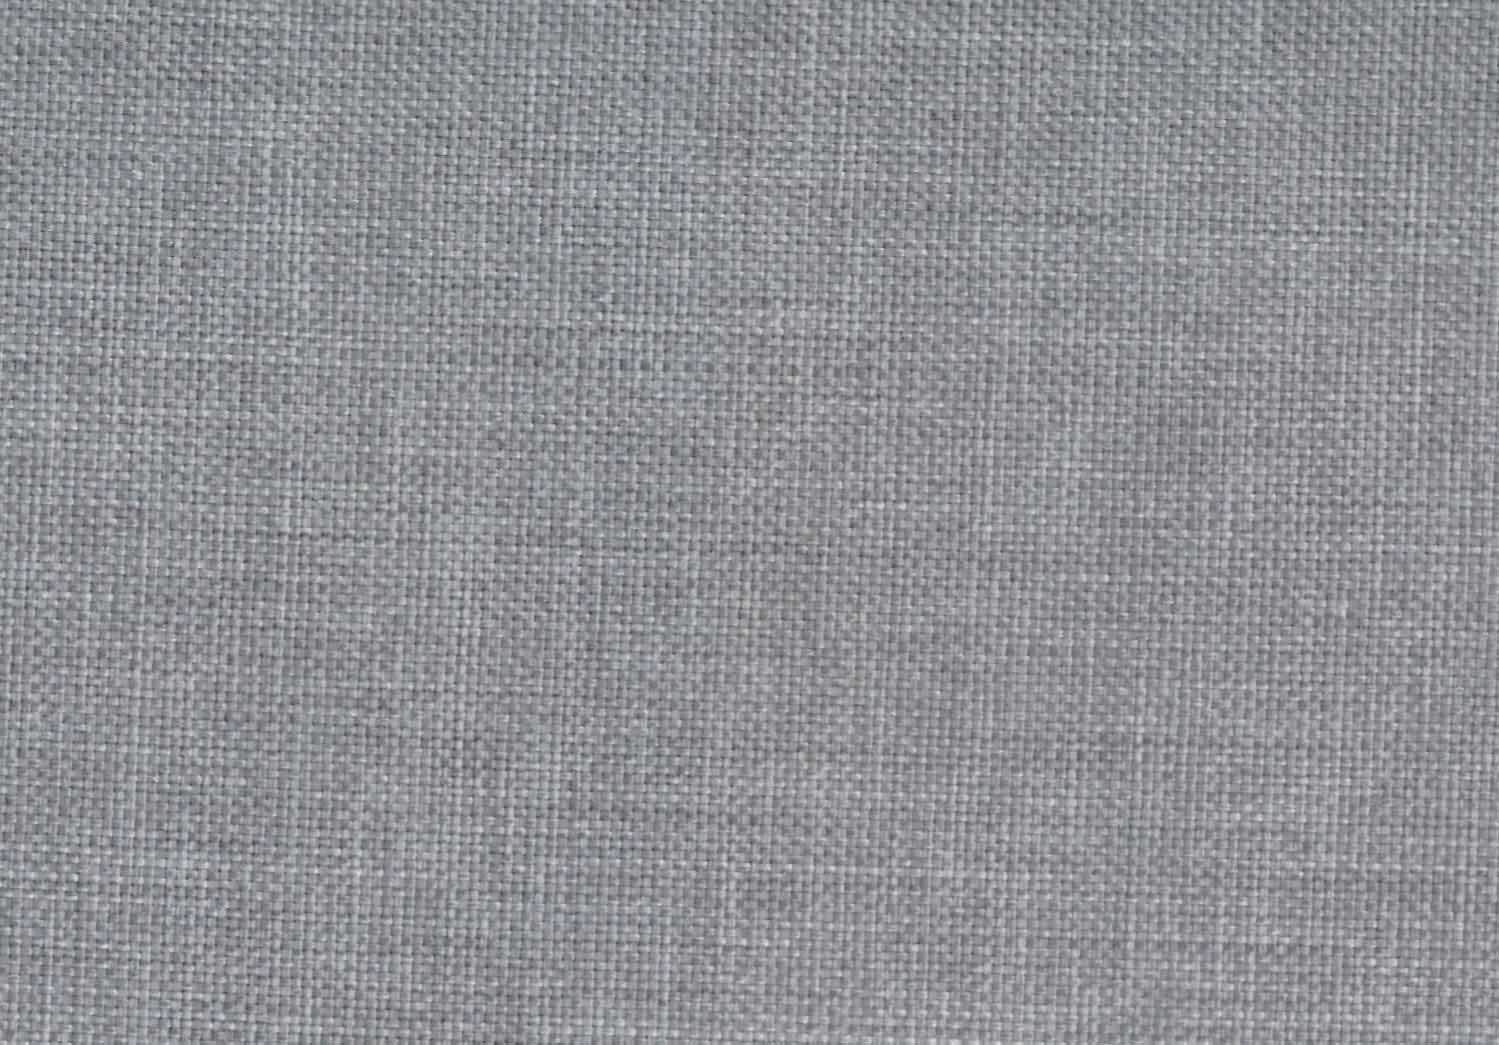 Free Download Burn Web Design 40 Grey Texture Background And